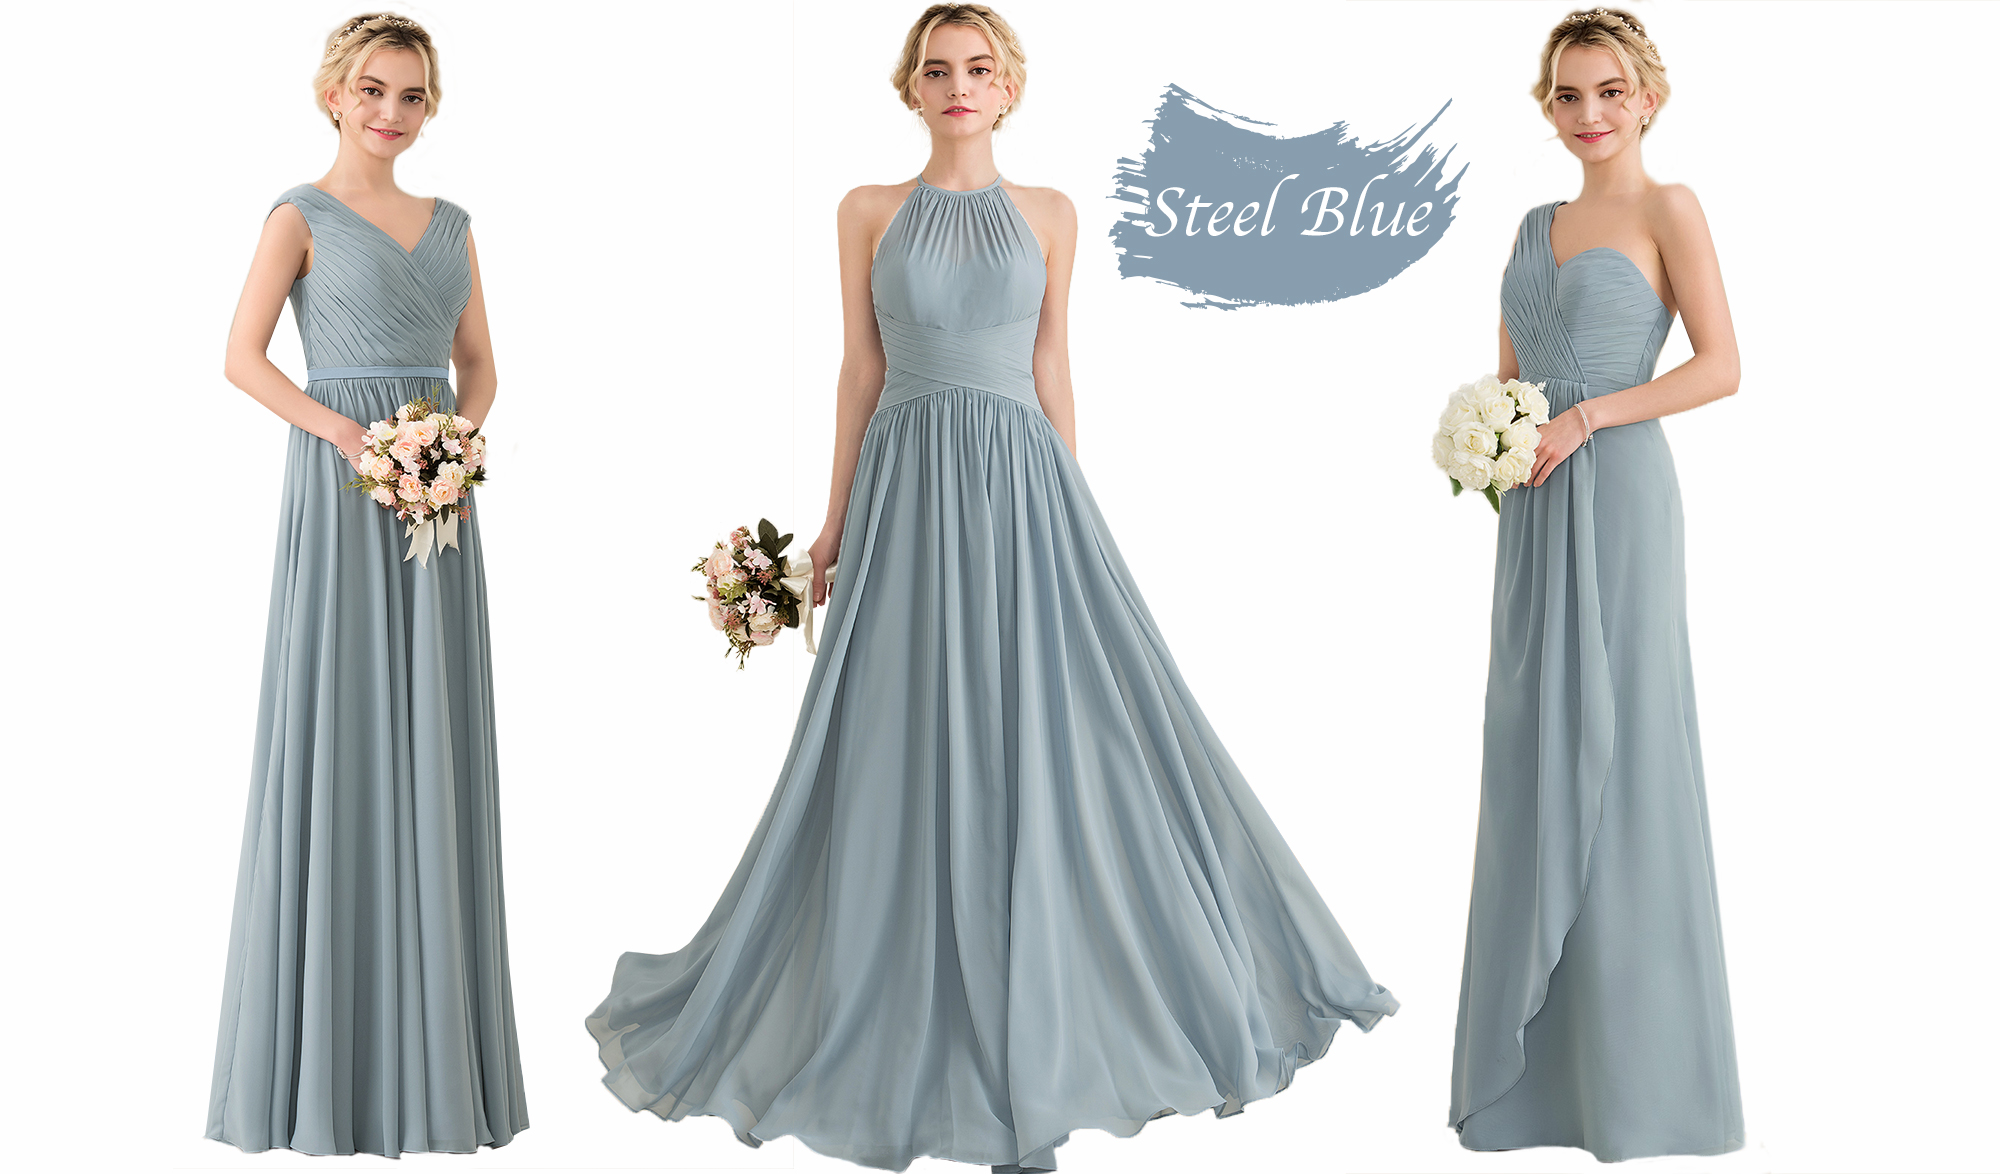 The New Bridesmaids Dress Colours Have Arrived! | JJsHouse